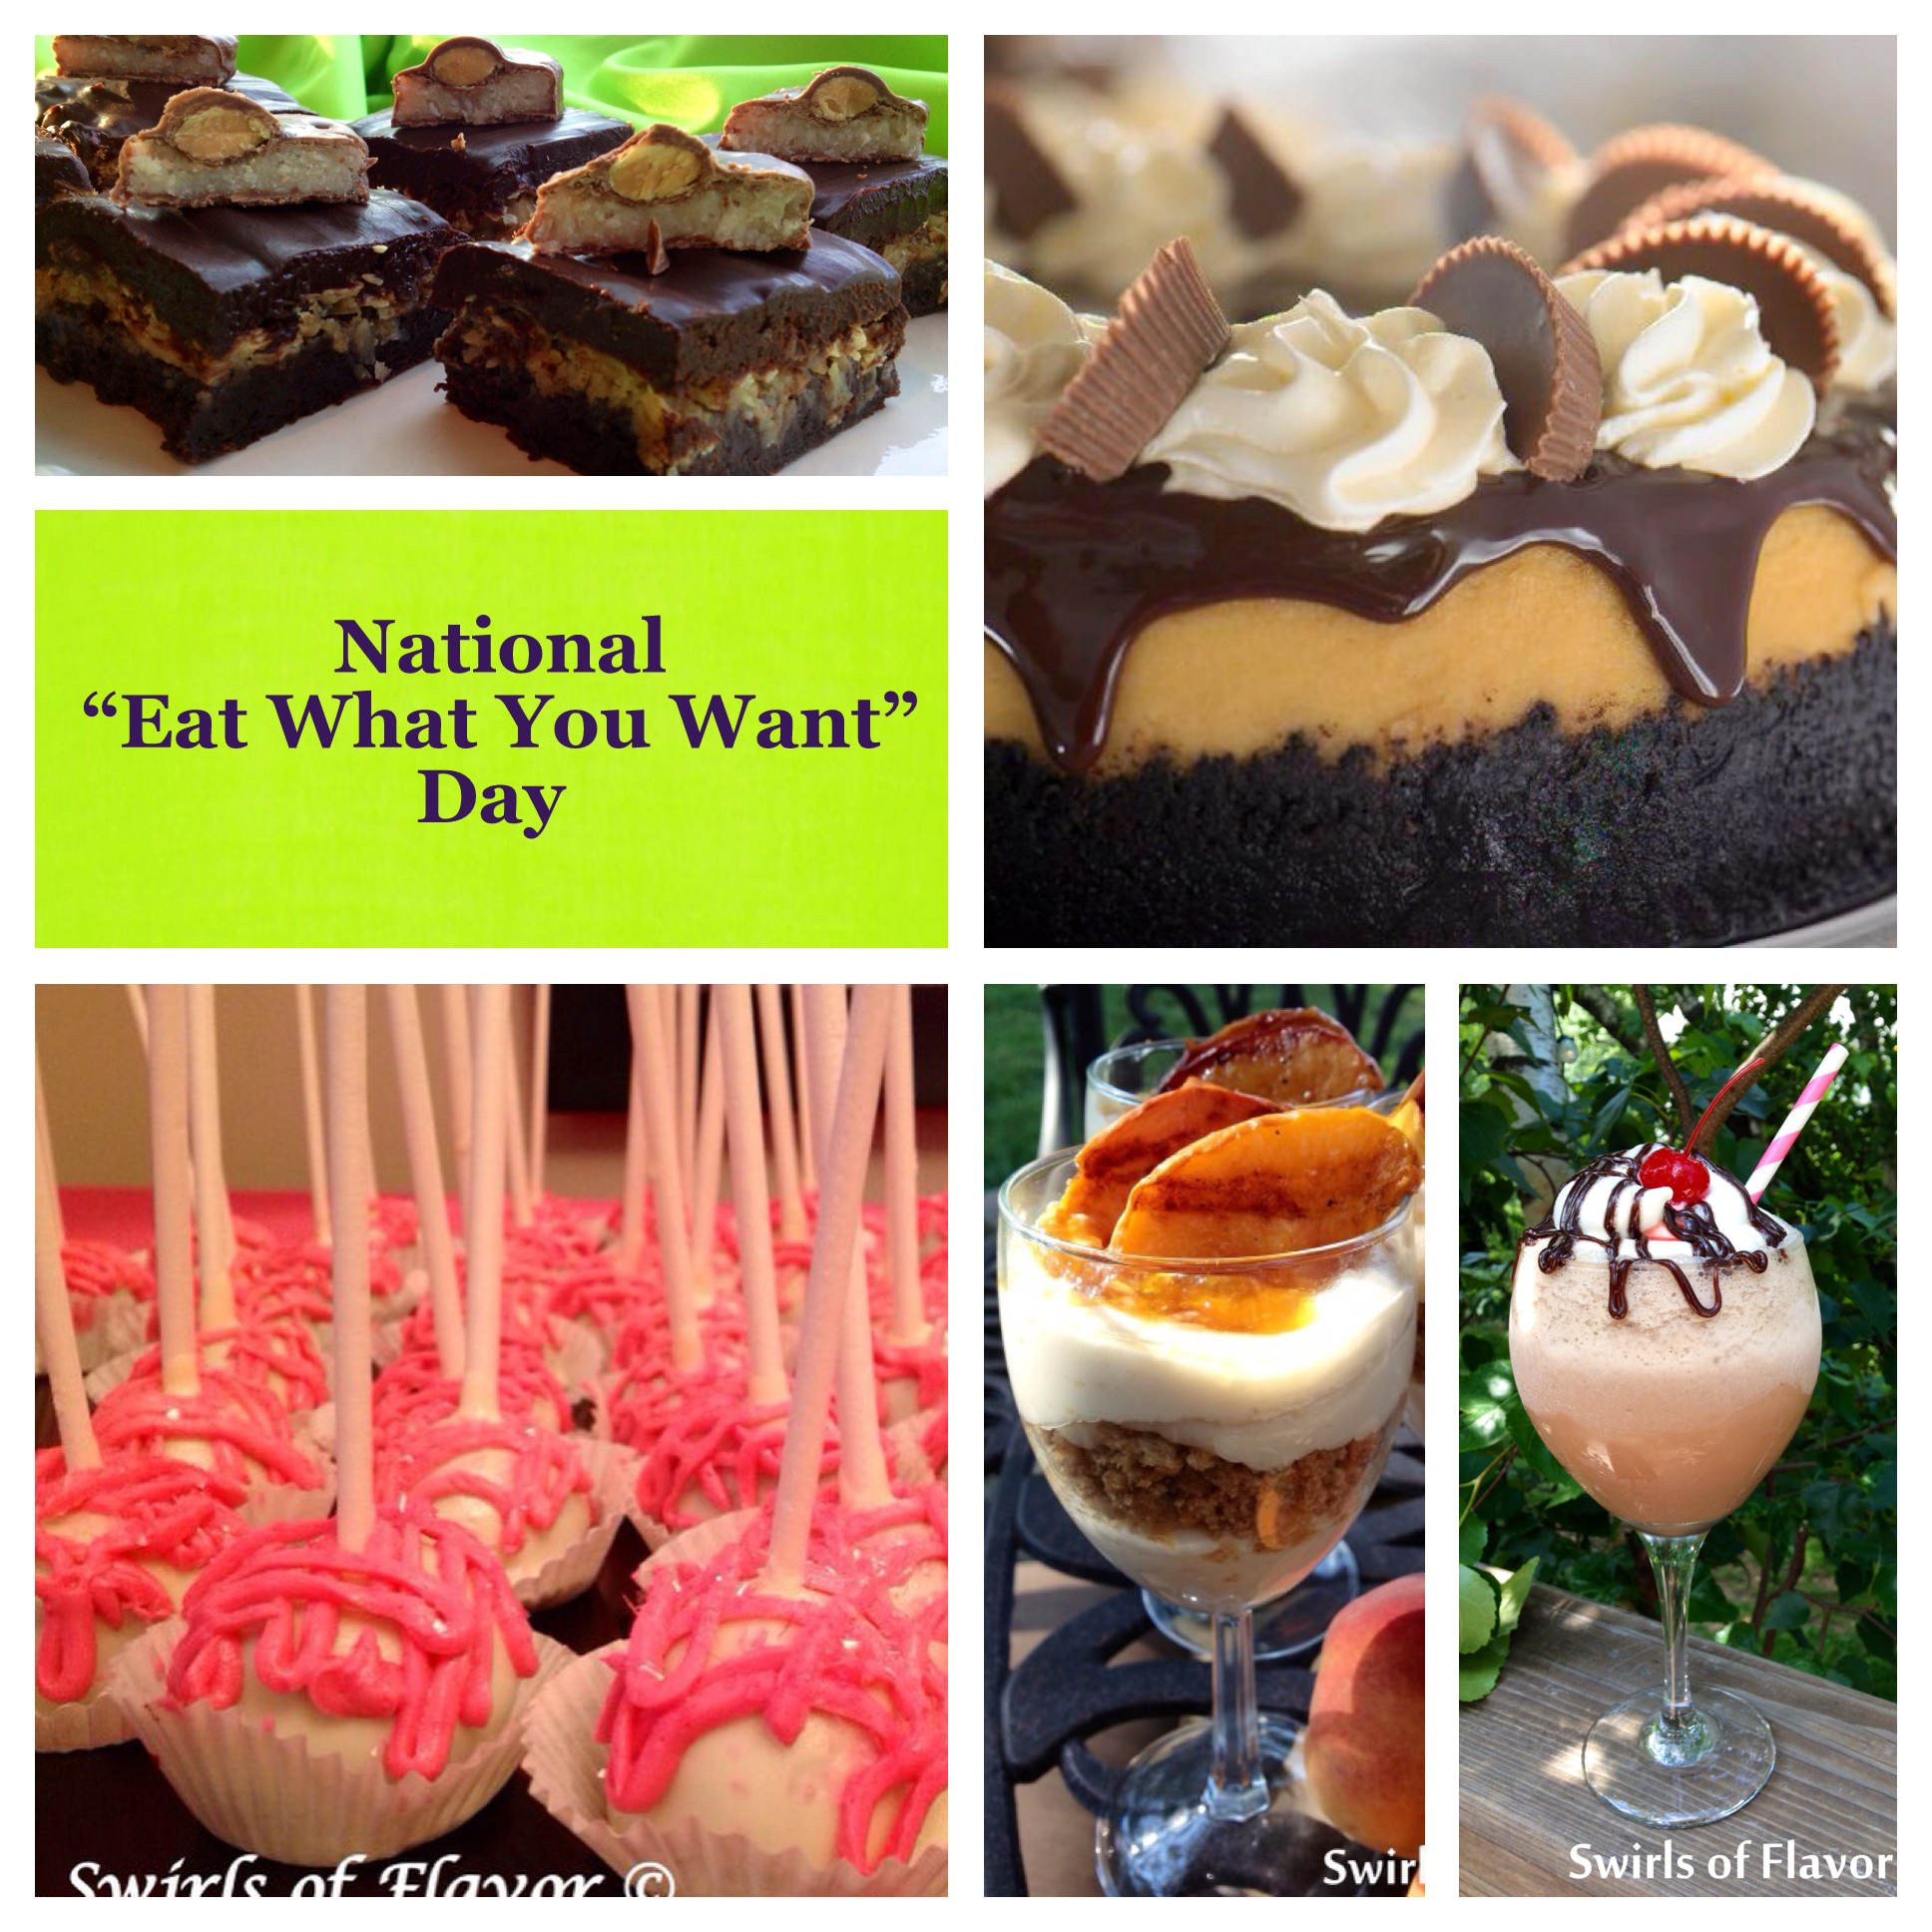 Eat What You Want Day: National Eat What You Want Day!#NationalEatWhatYouWantDay